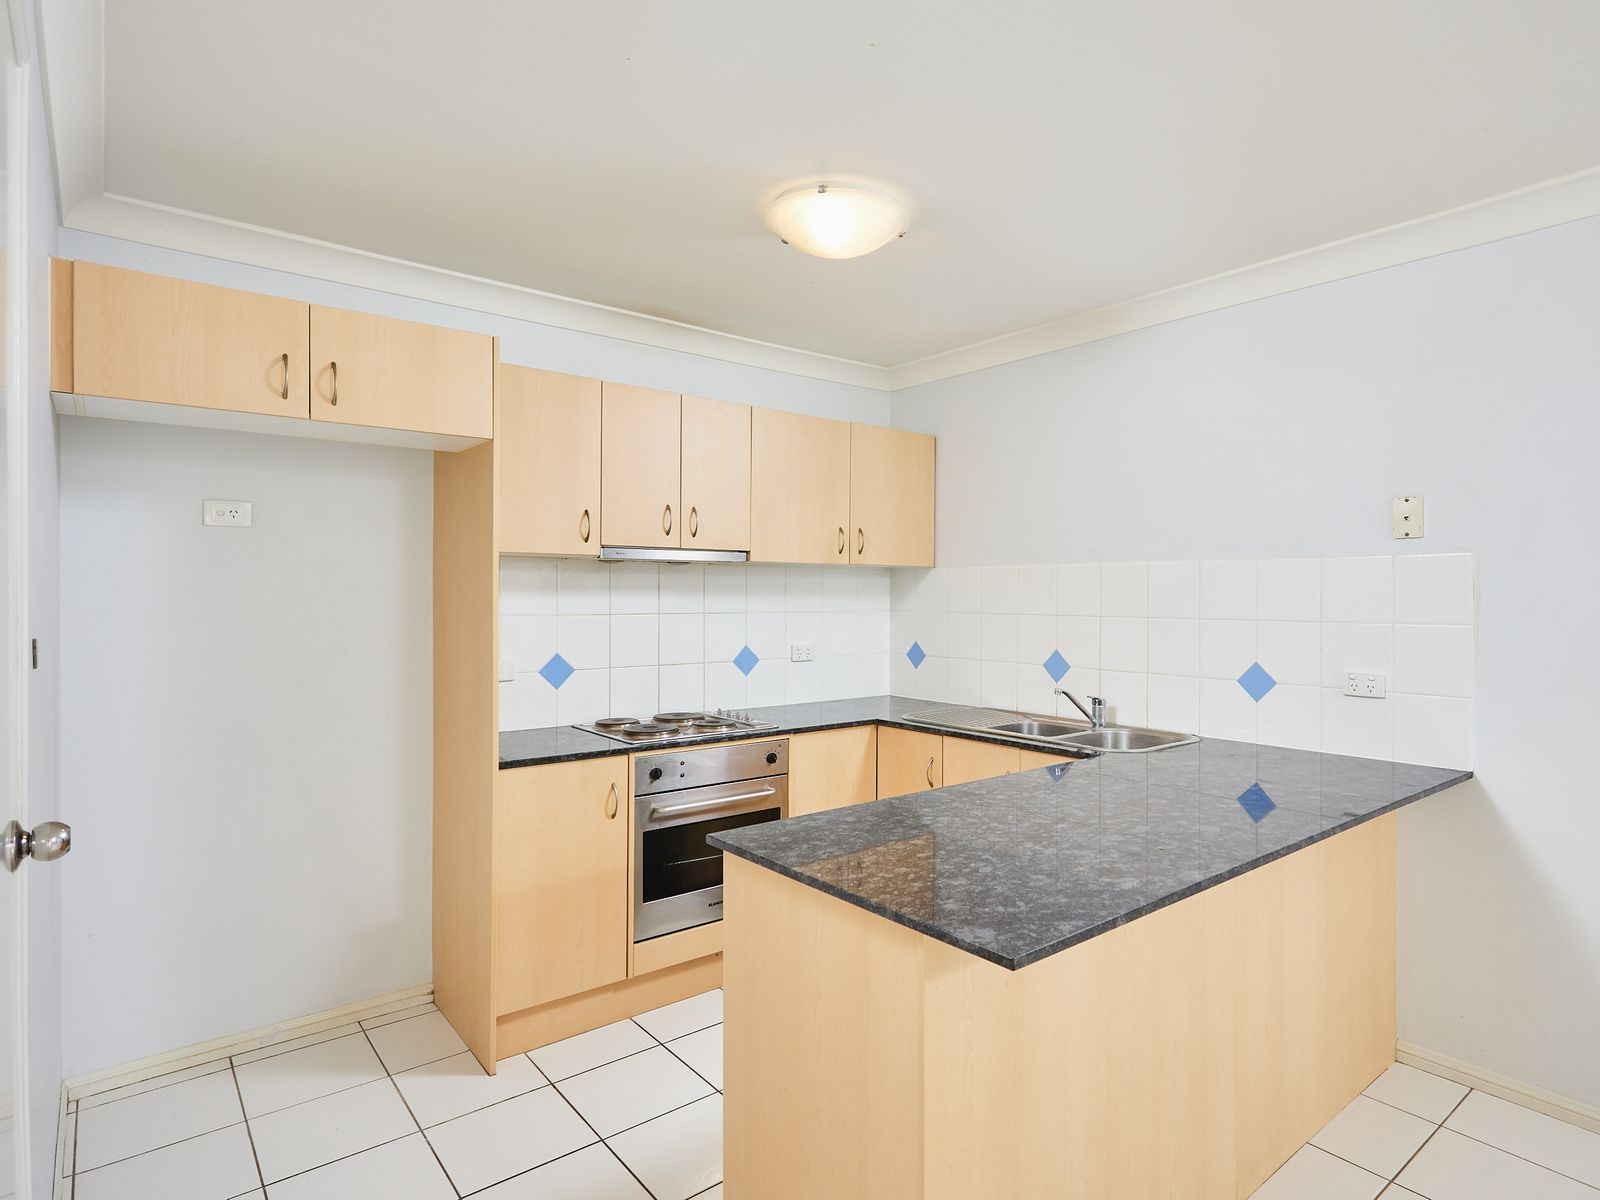 1/12 Betty Street, Upper Coomera, QLD 4209